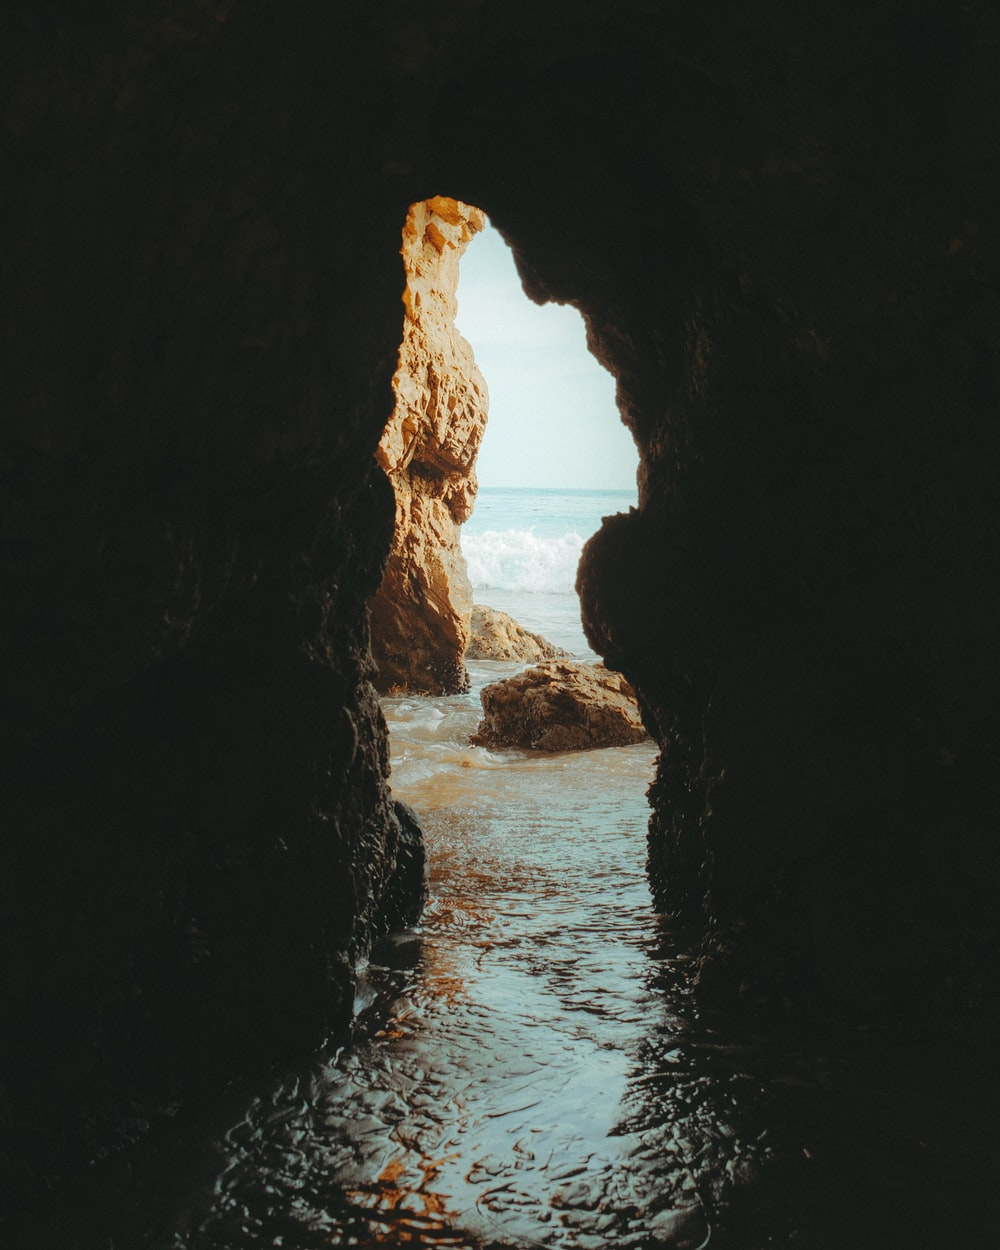 cave near body of water during daytime